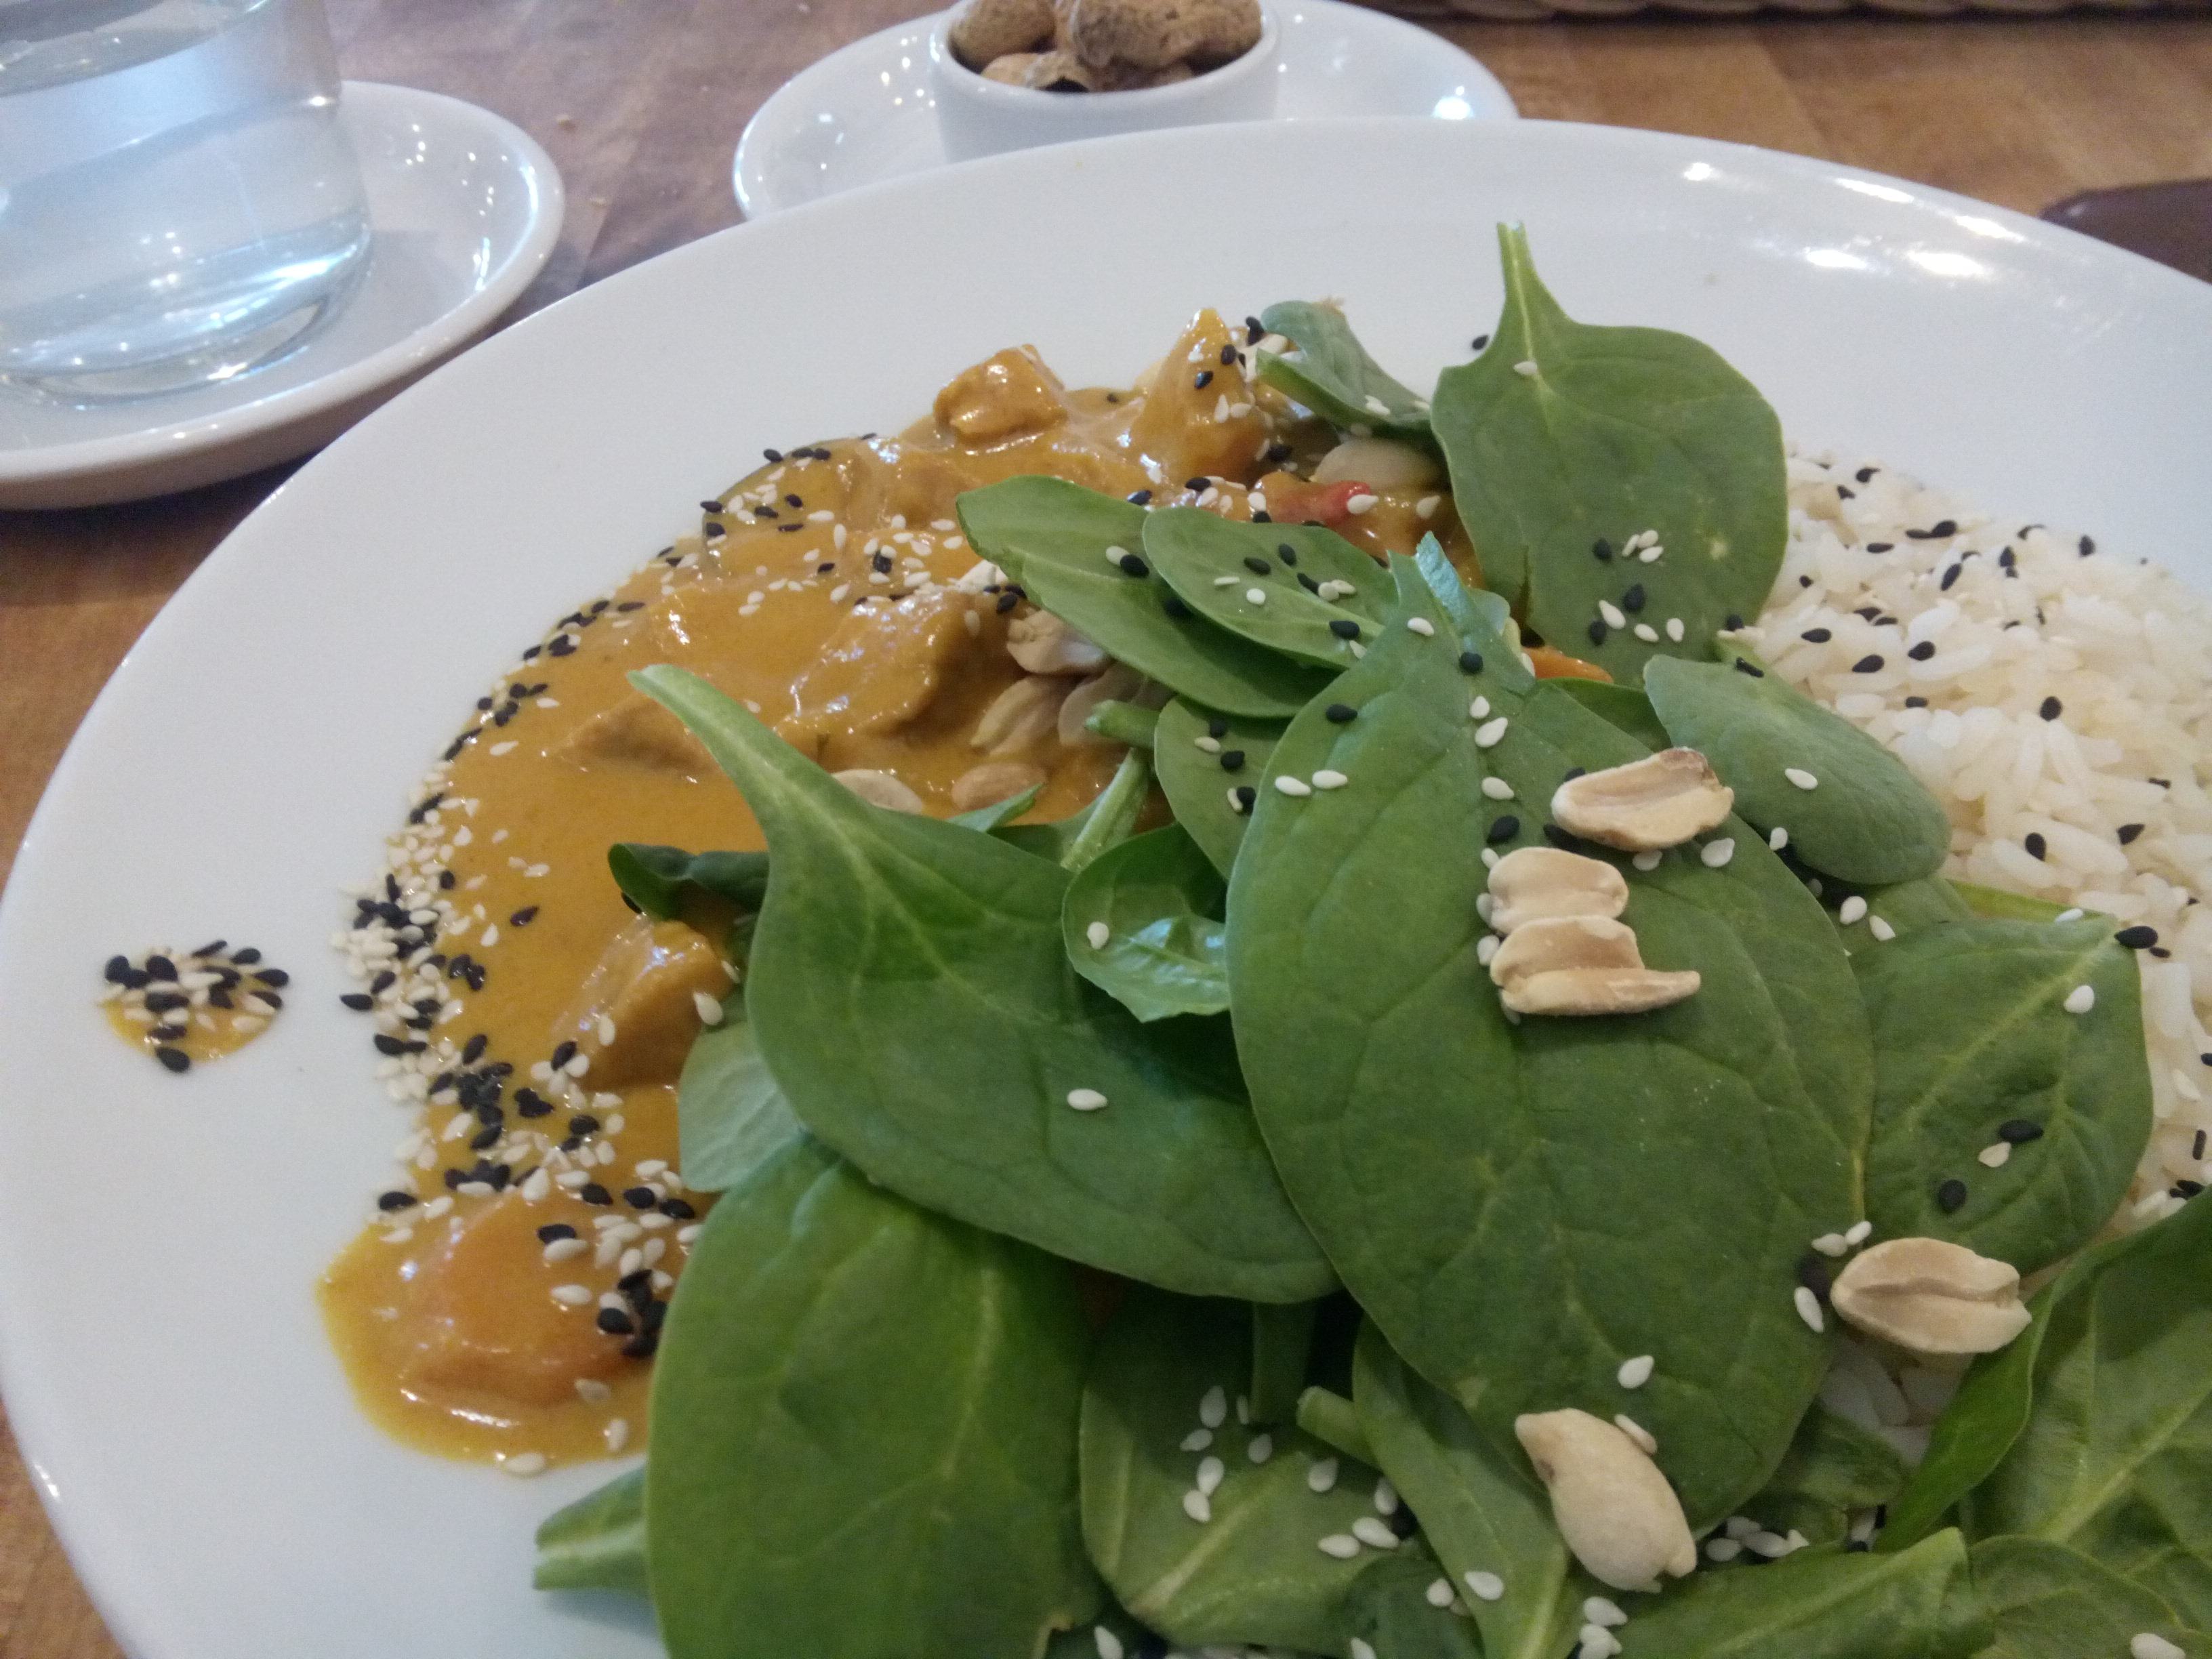 A white plate with creamy orange curry sprinkled with sesame seeds, fresh spinach and peanuts